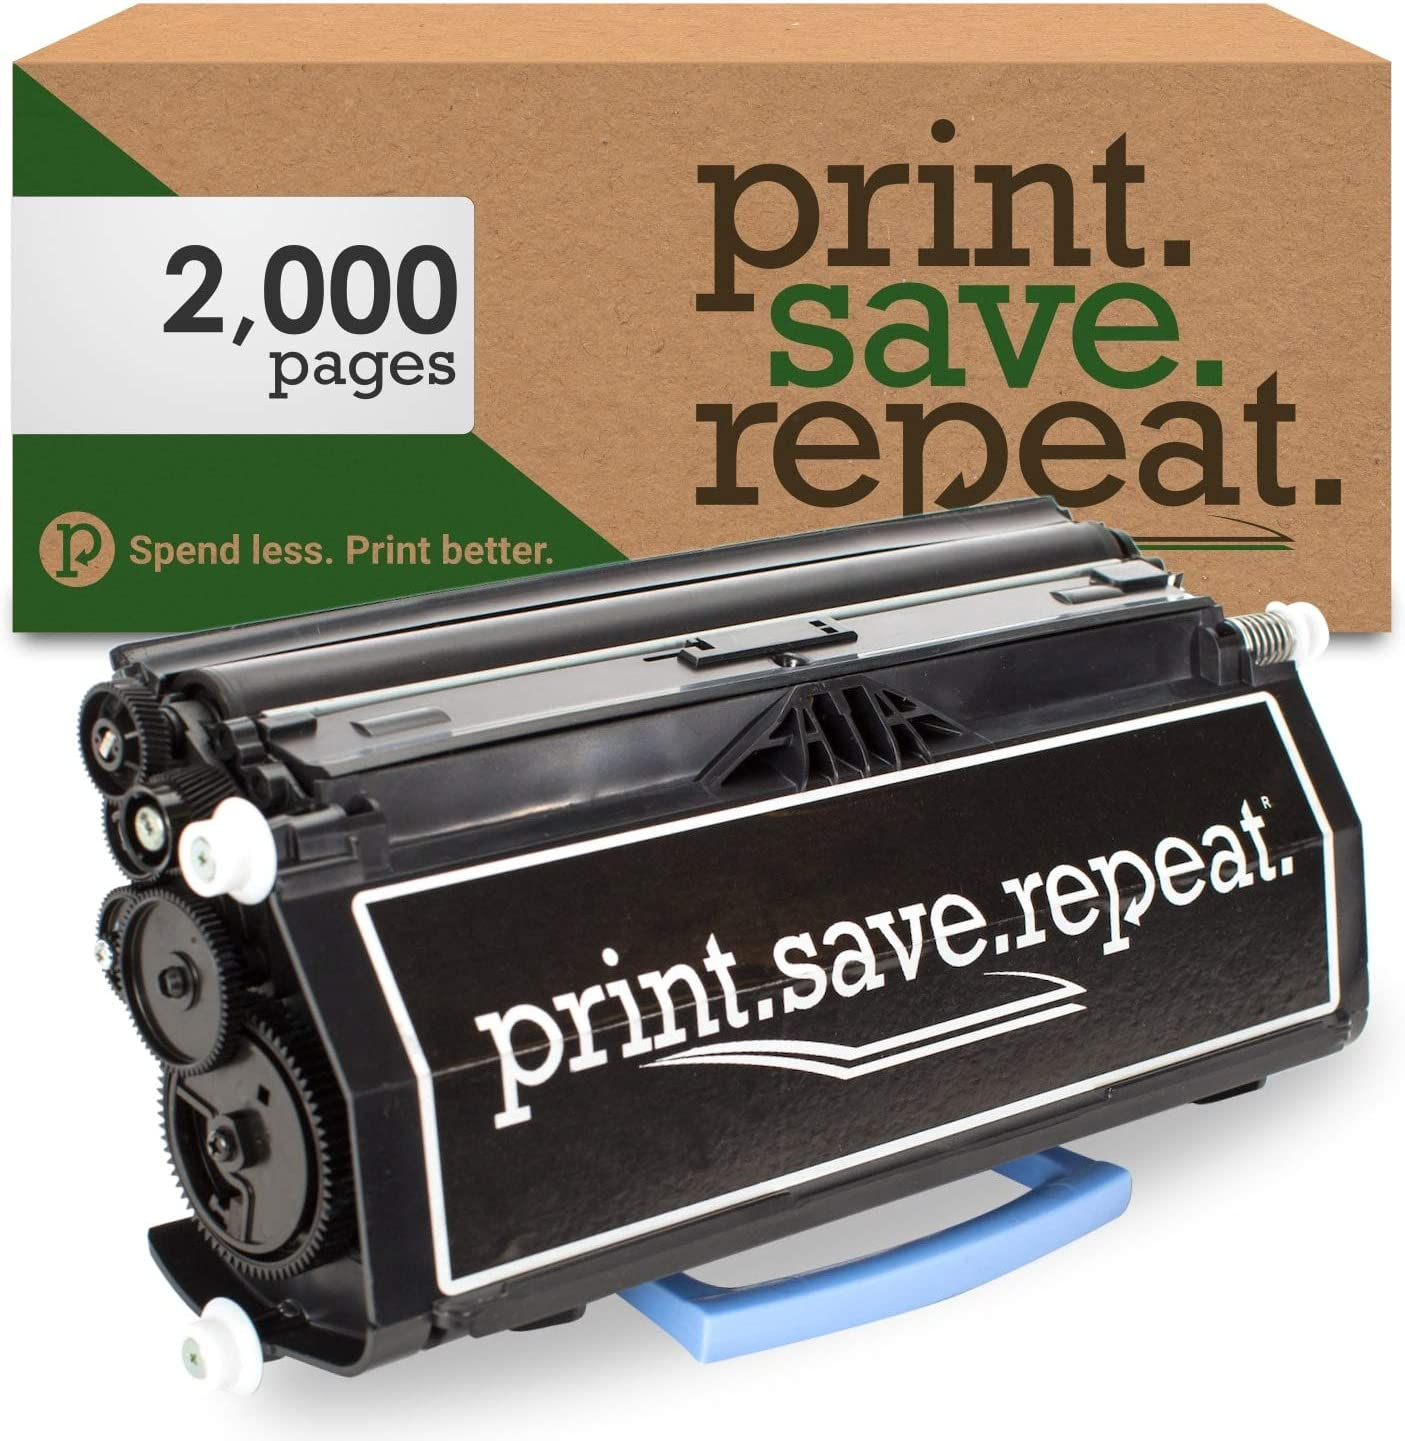 Print.Save.Repeat. Dell PK492 Remanufactured Toner Cartridge for 2330, 2350 [2,000 Pages]